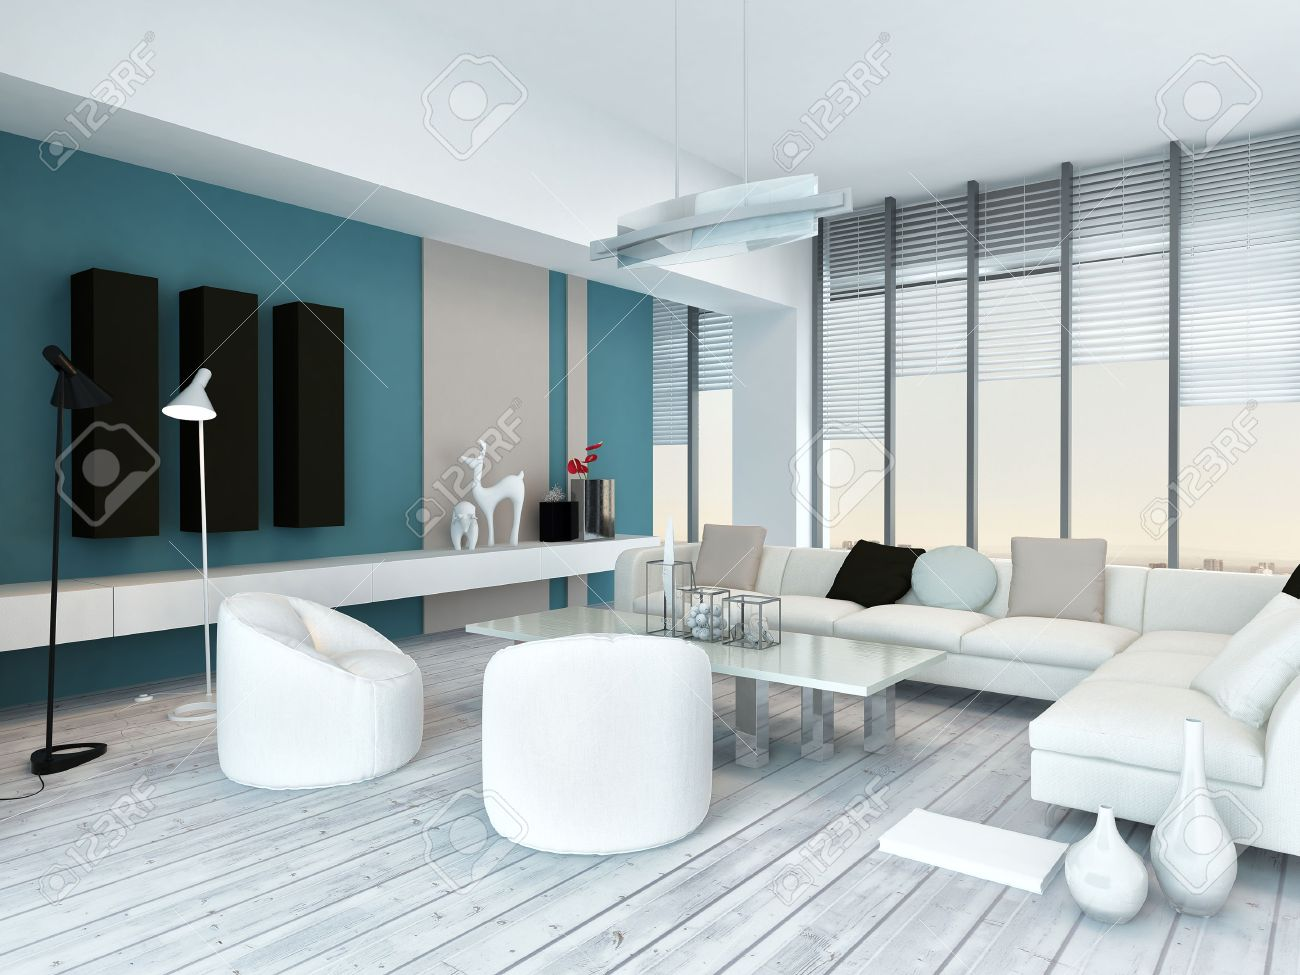 Painted Living Room Painted Living Room Stock Photos Images Royalty Free Painted